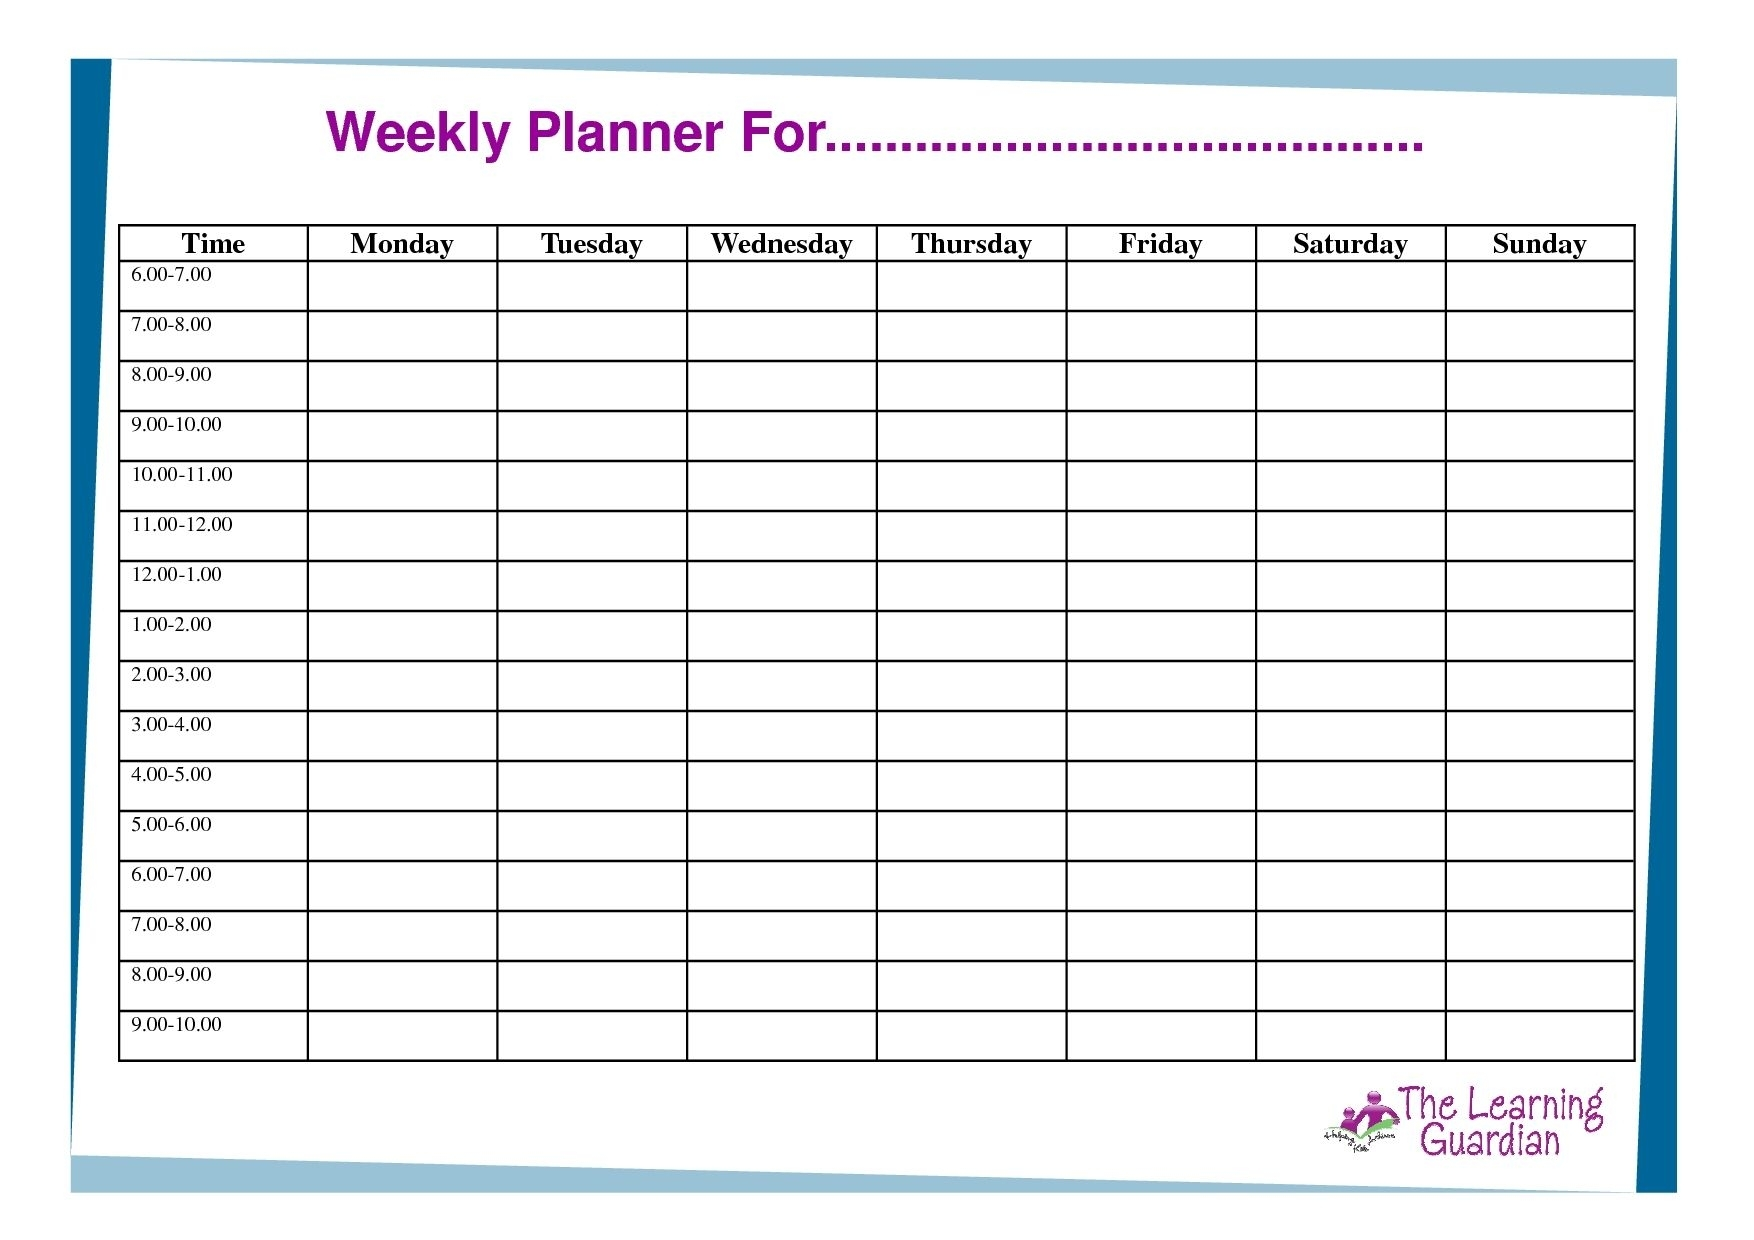 Days Of The Week Calendar Able Schedule Template For Preschool | Smorad inside Days Of The Week Schedules Free Template